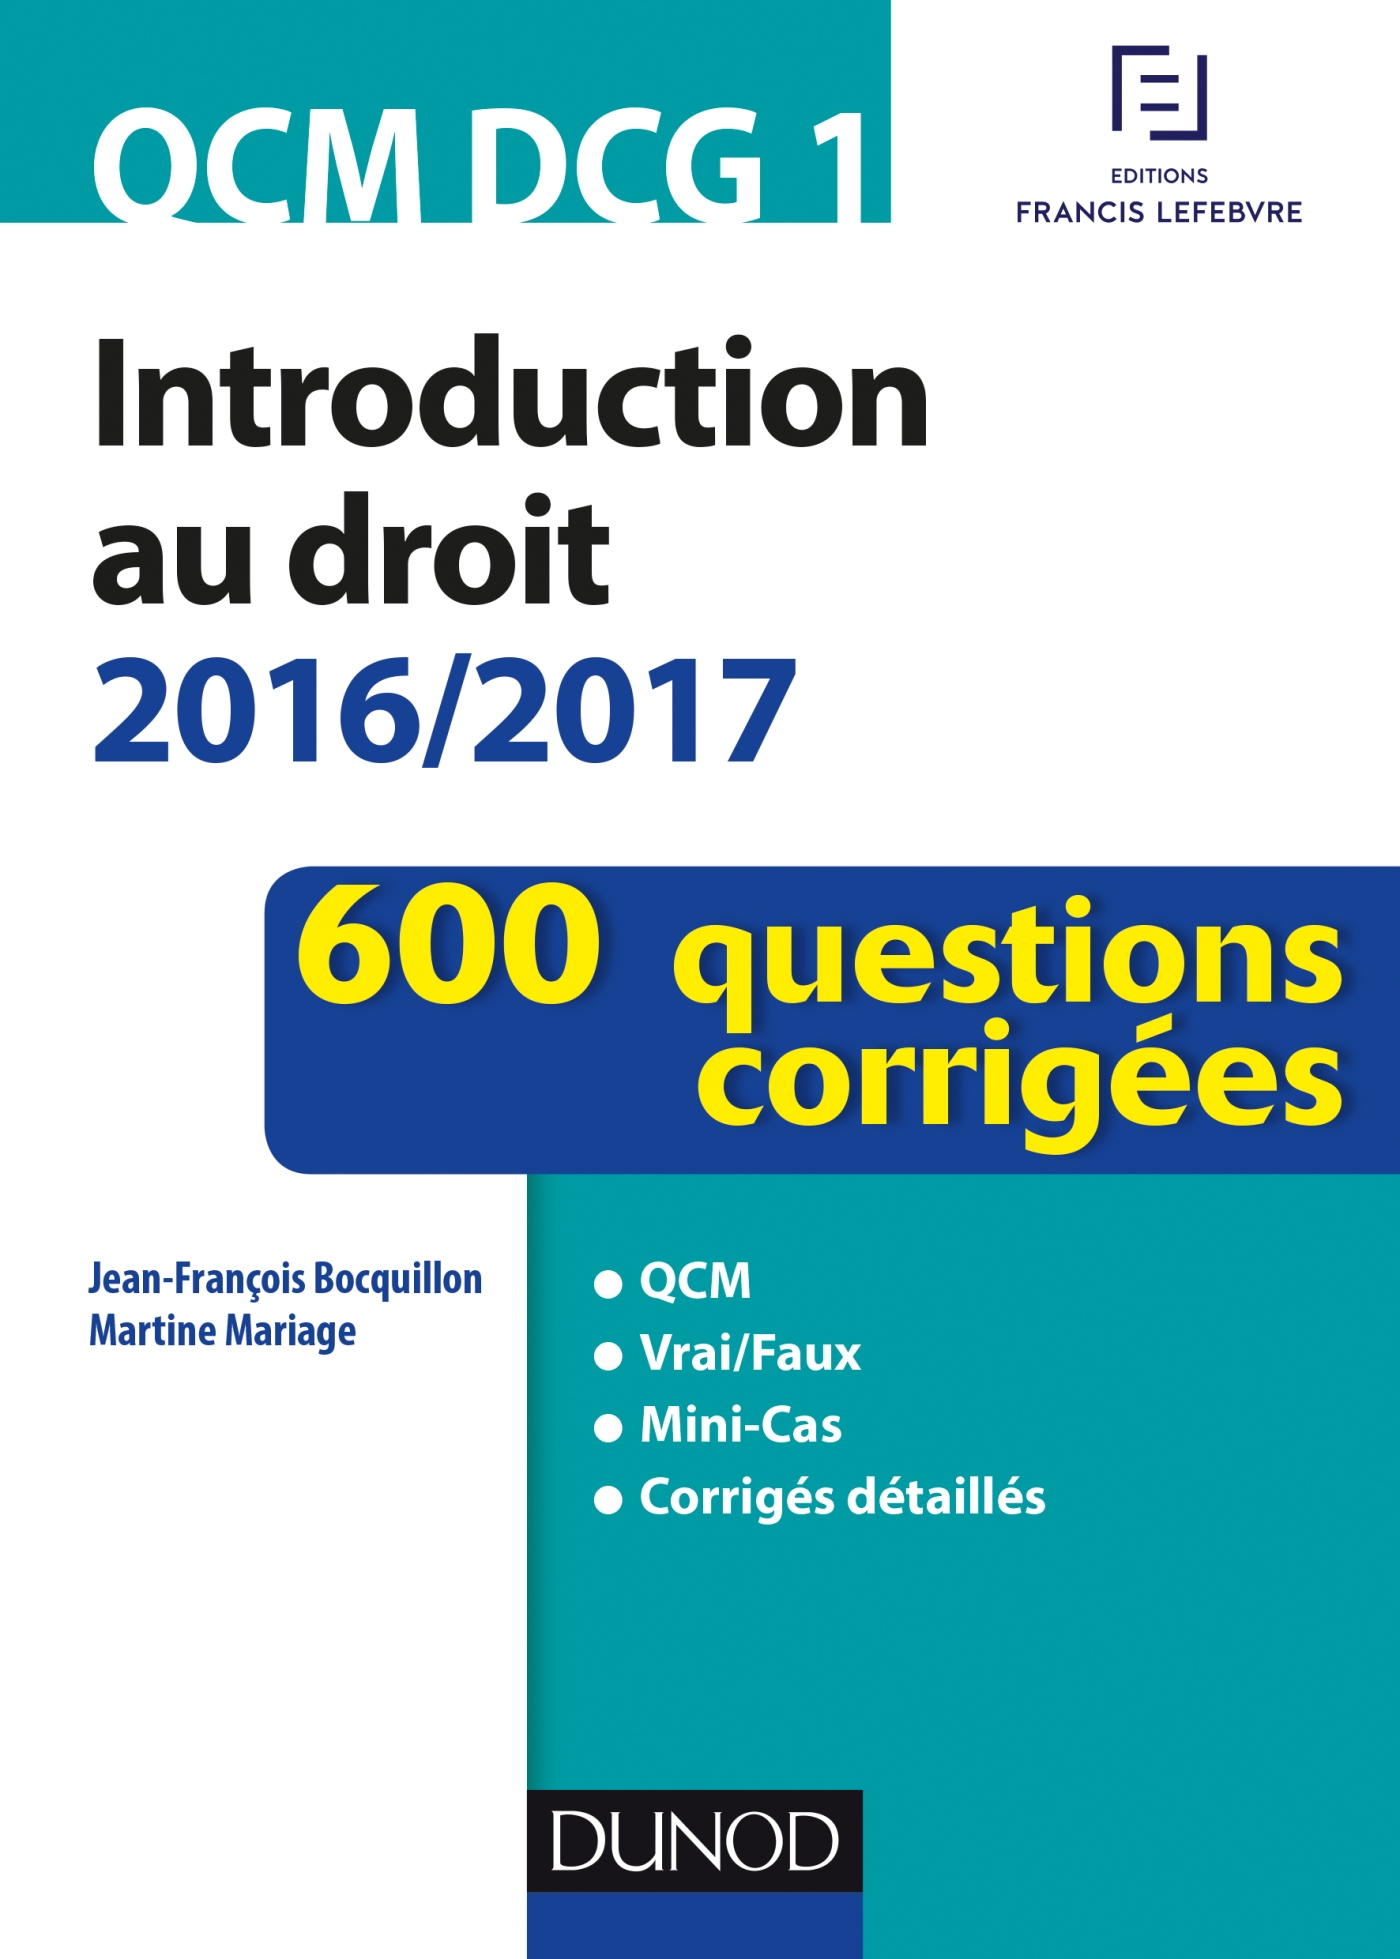 QCM DCG 1 - Introduction au droit 2016/2017 - 4e éd.